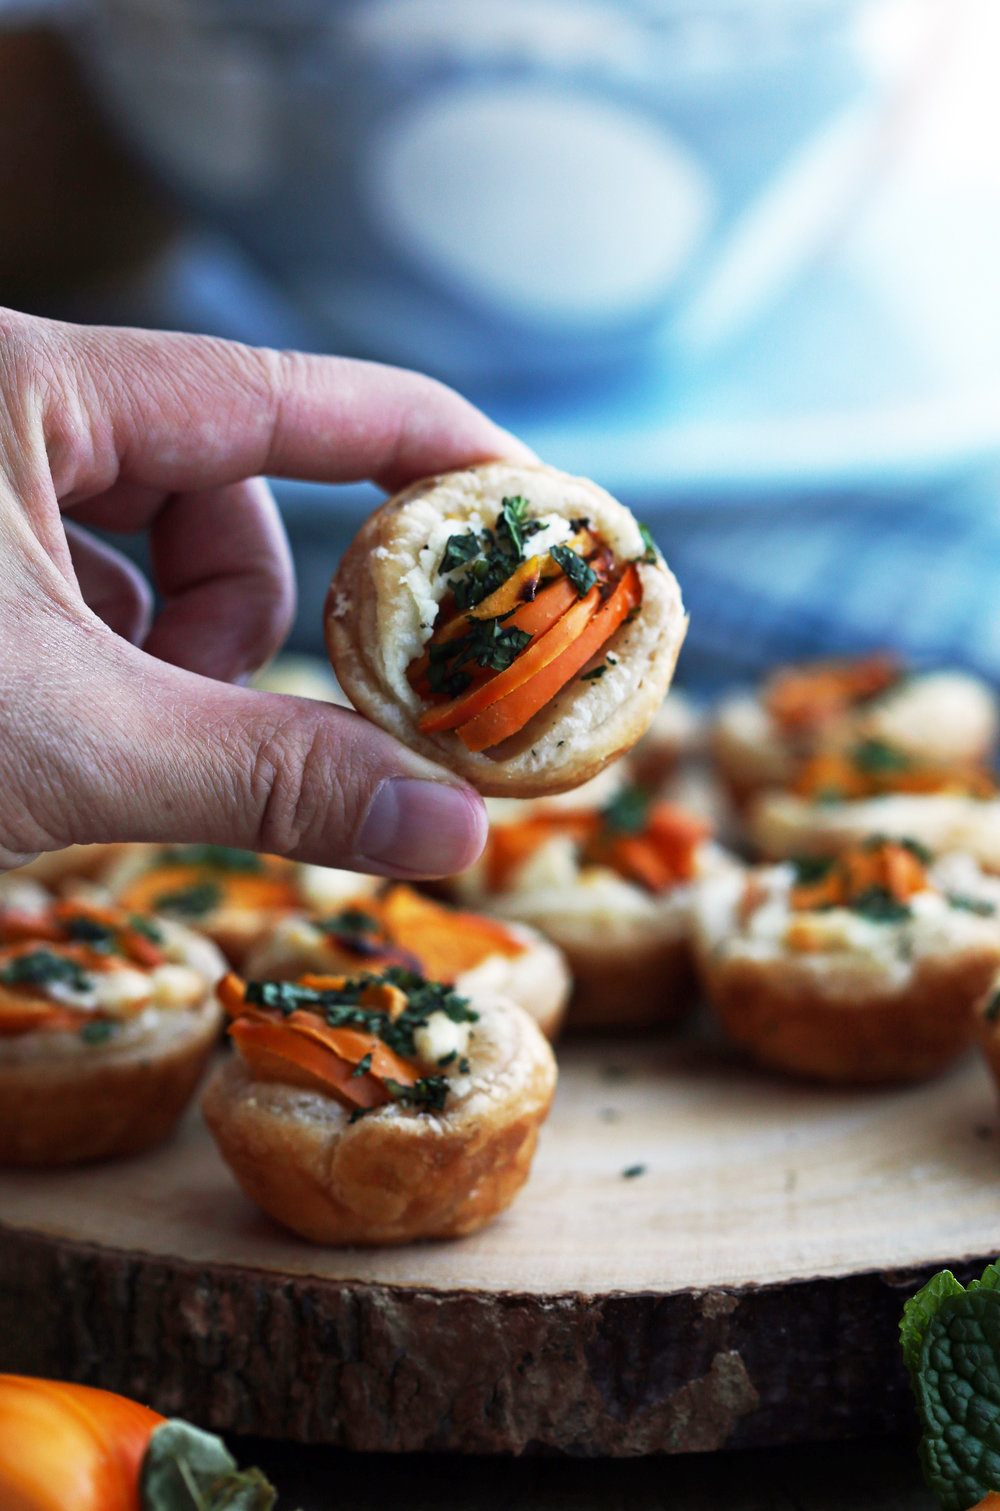 A hand holding a single Persimmon Goat Cheese Tartlet over a wooden platter full of more tartlets.